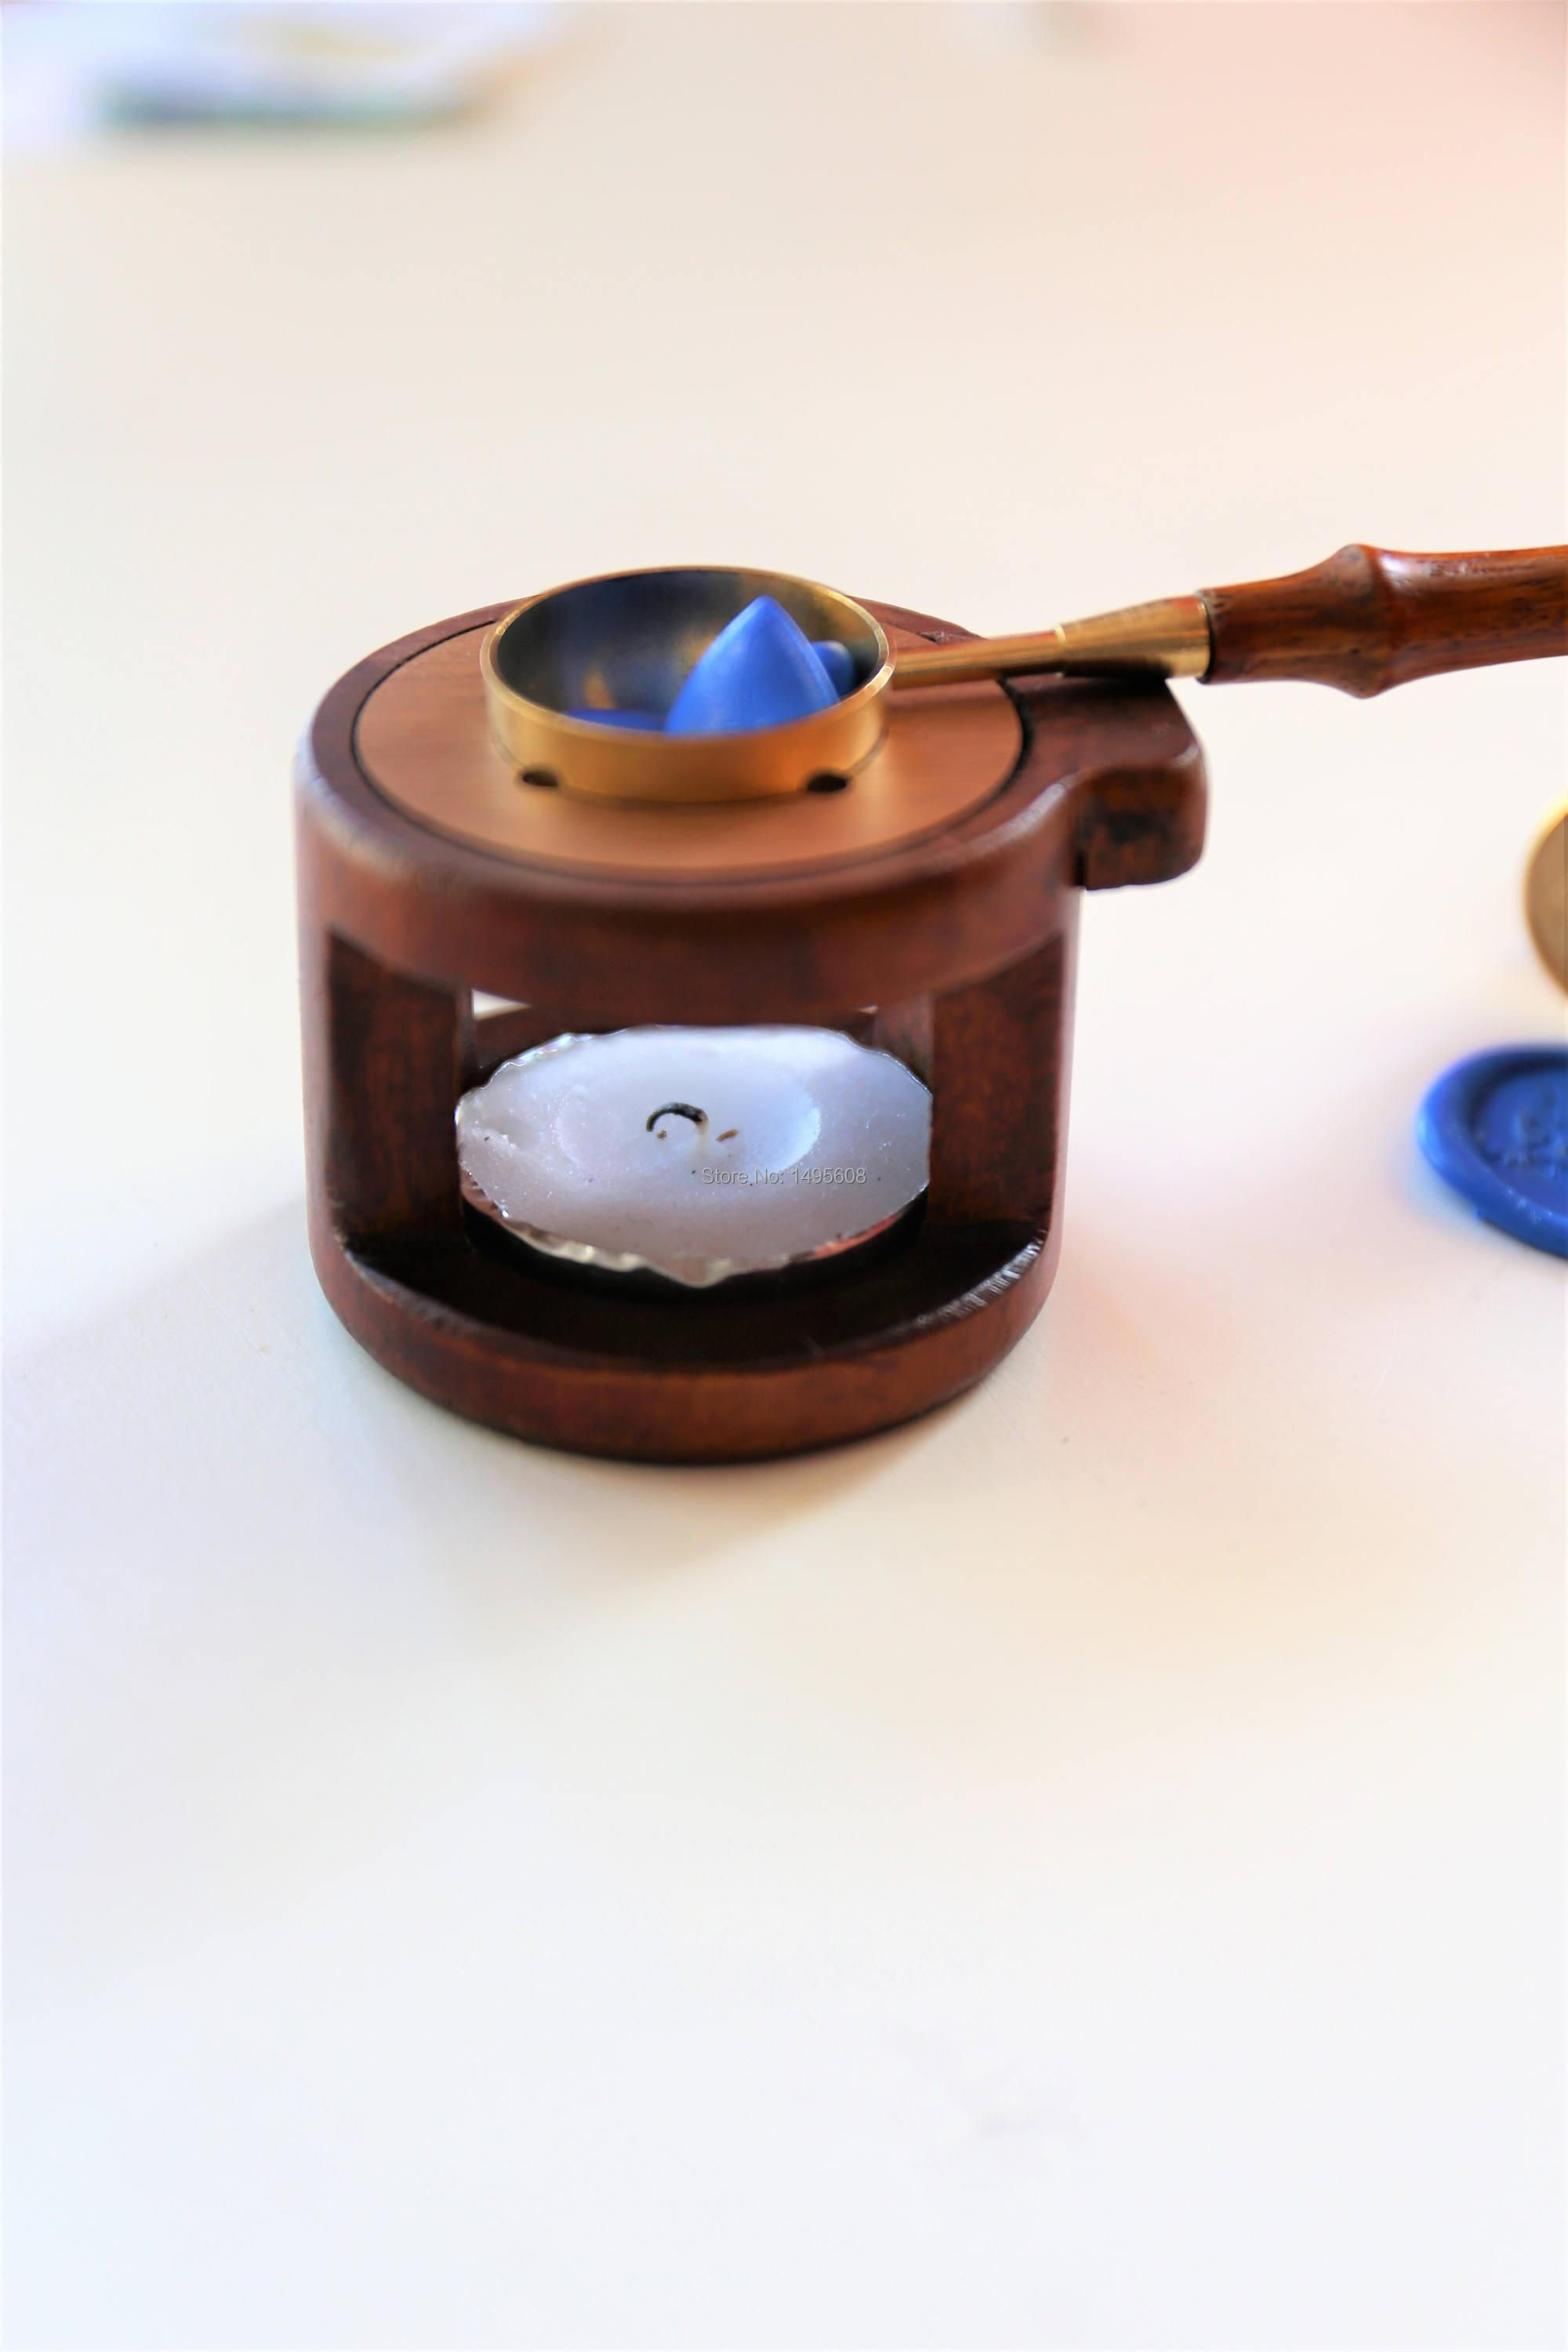 Fire wax seal wax sealing stamps use special tools melting furnace and rosewood copper spoon / metal spoon